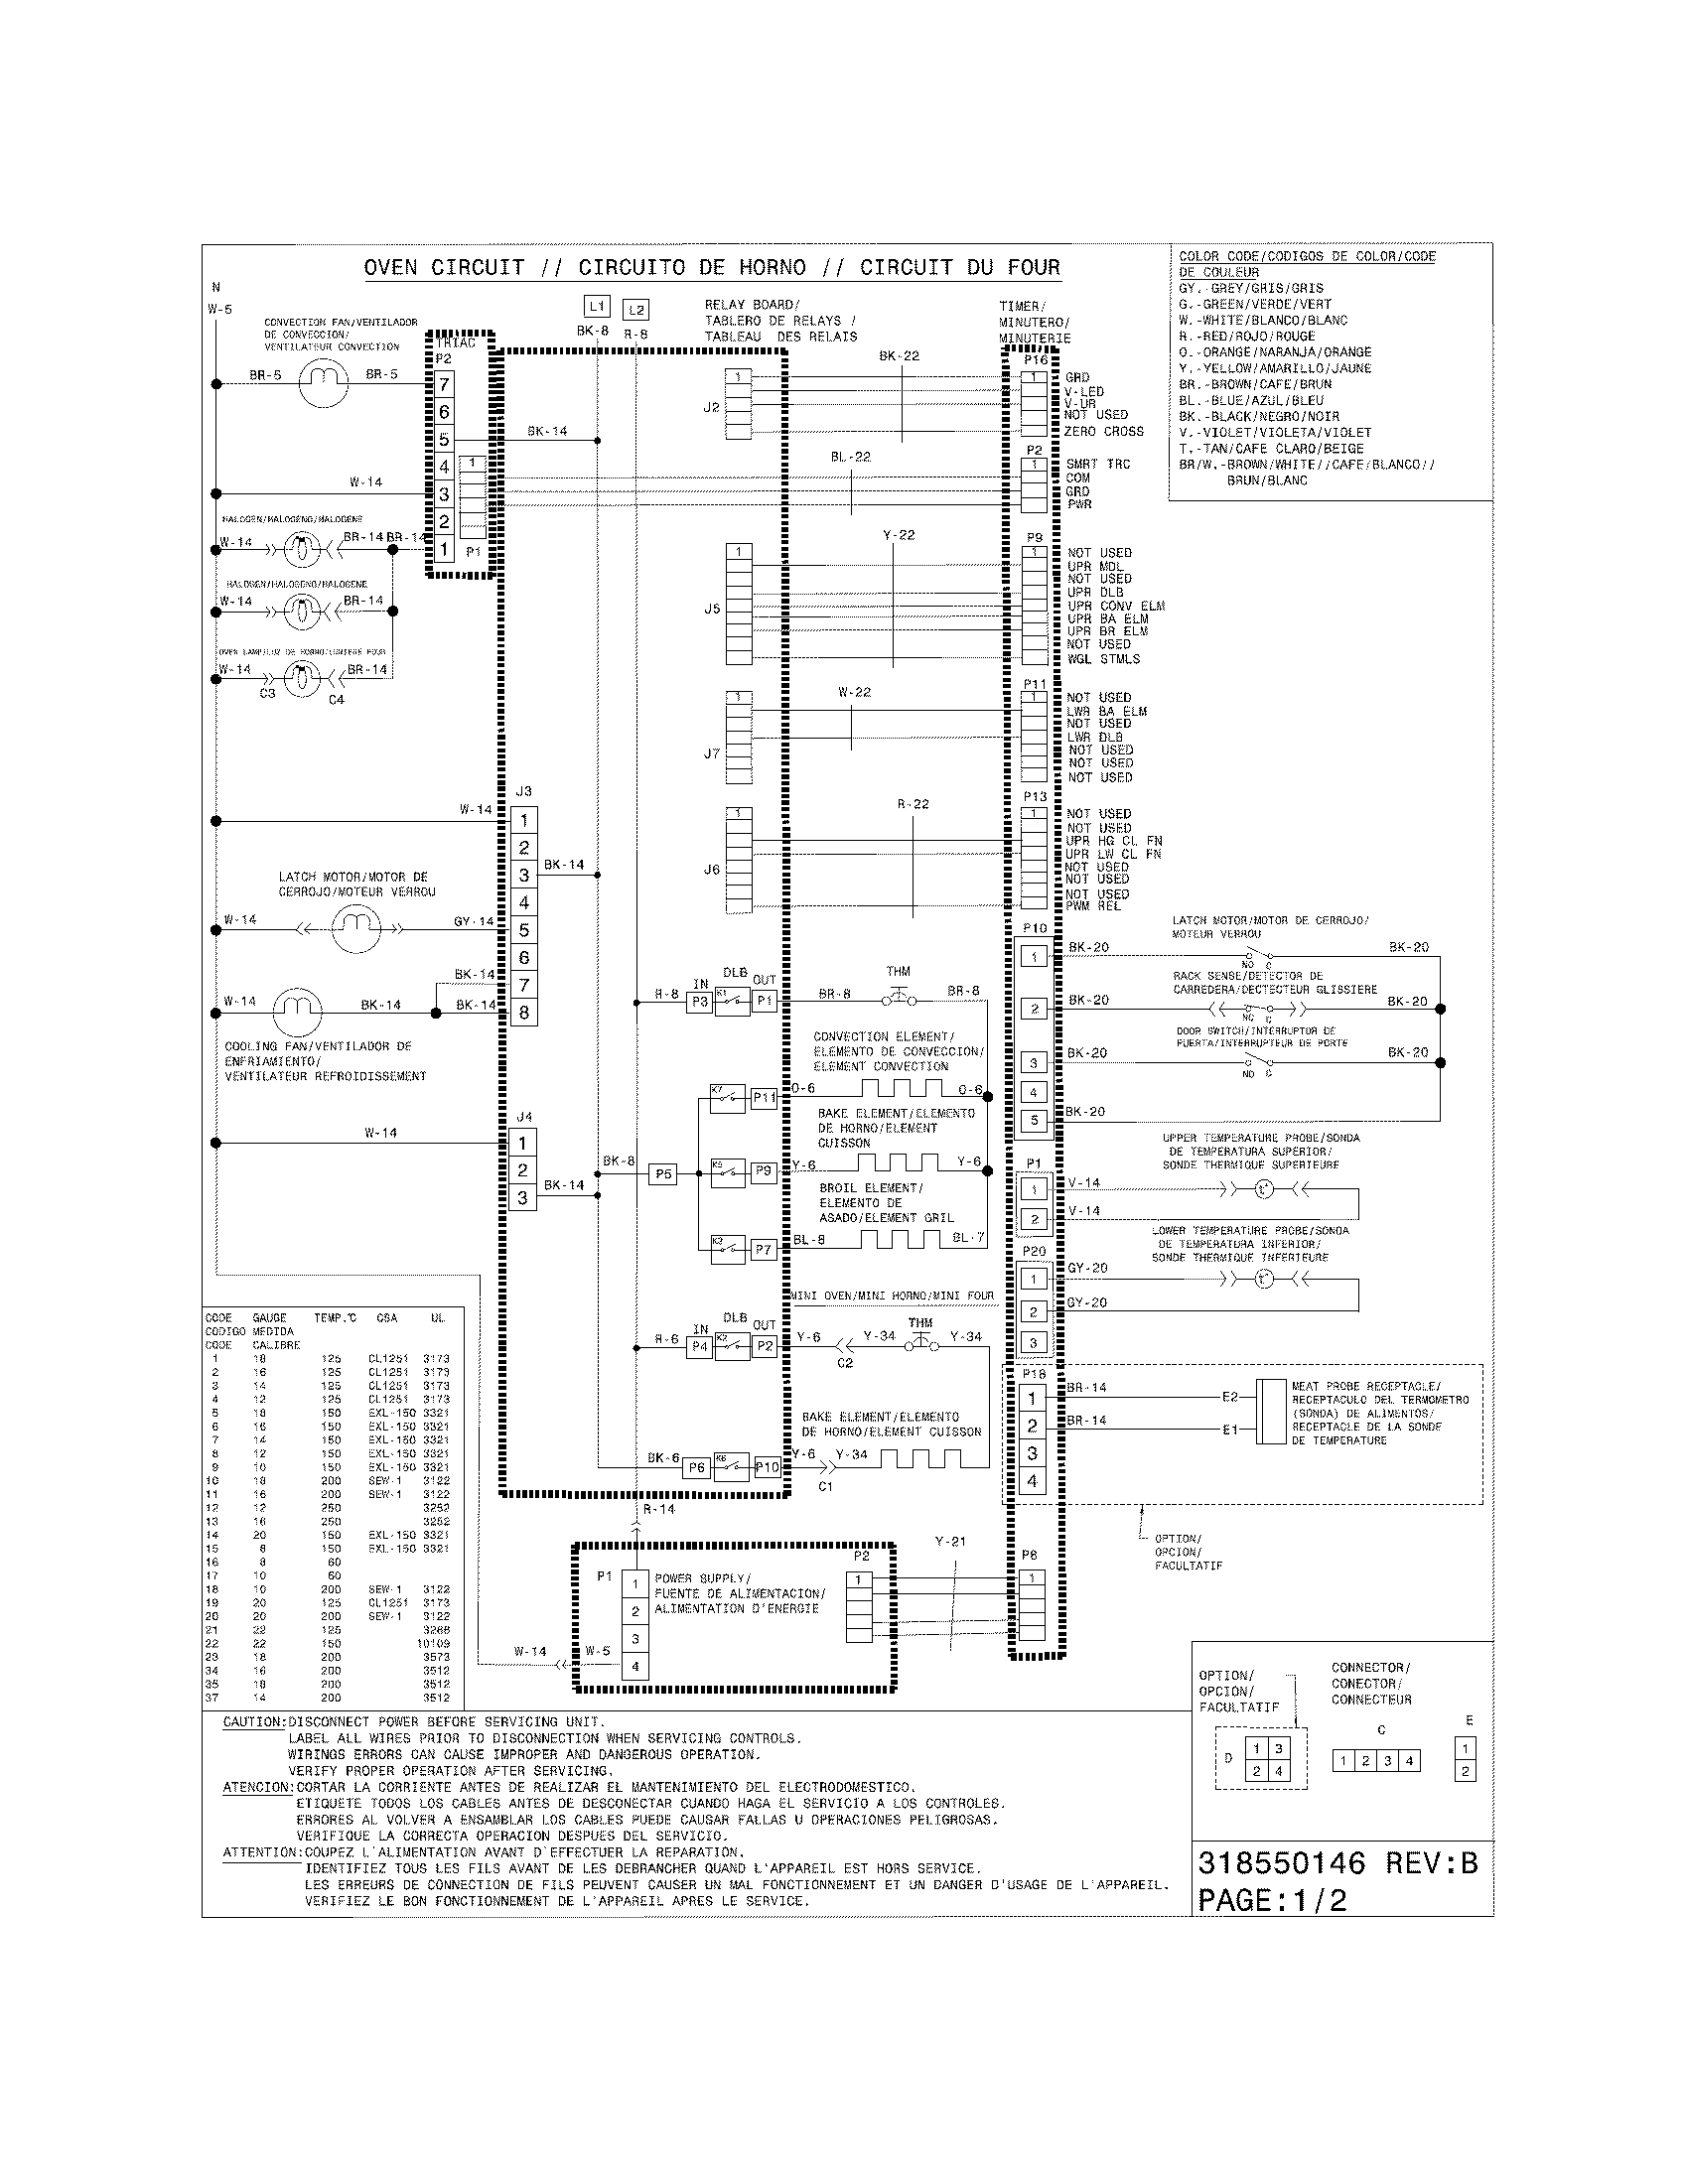 electrolux range wiring diagram tappan electric double wall oven not rh ch1ld mobile shop co